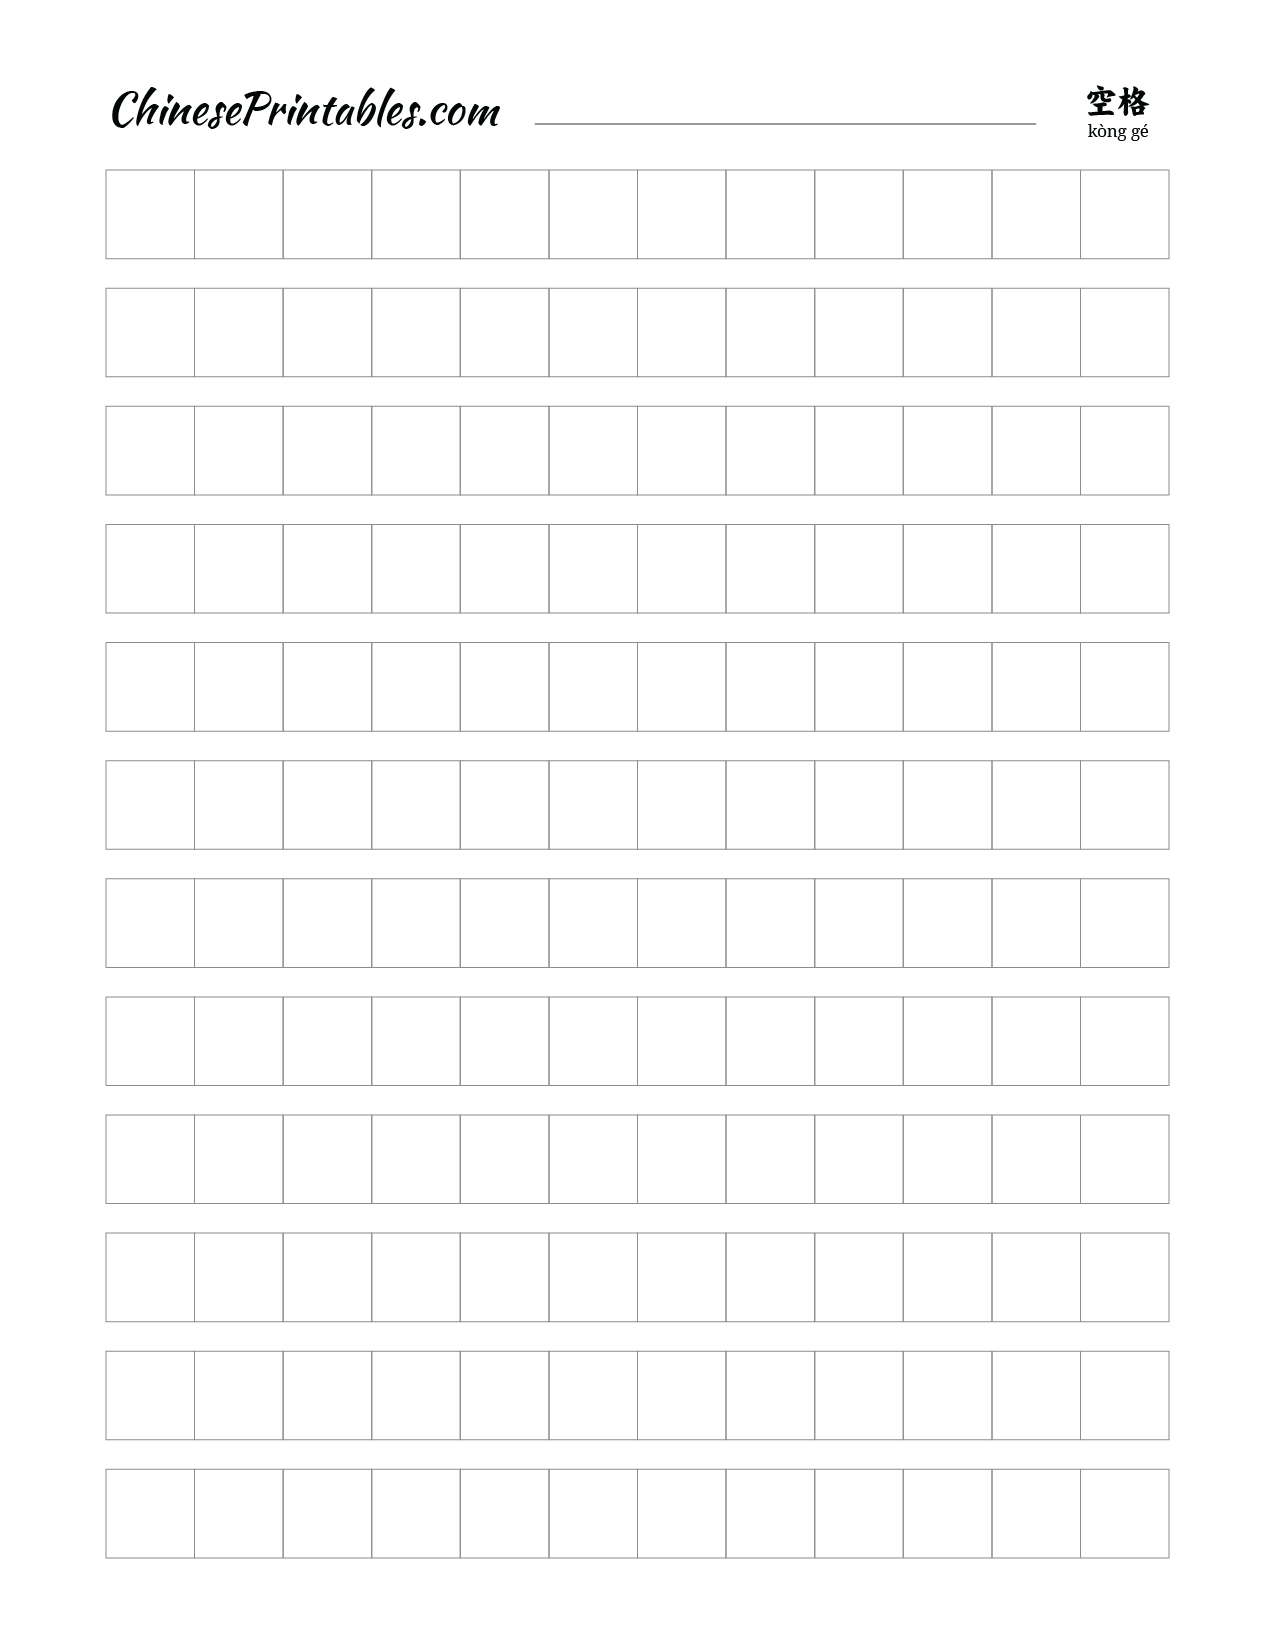 Chinese Printables - Free Printable Resources To Help You Write - Free Printable Writing Sheets